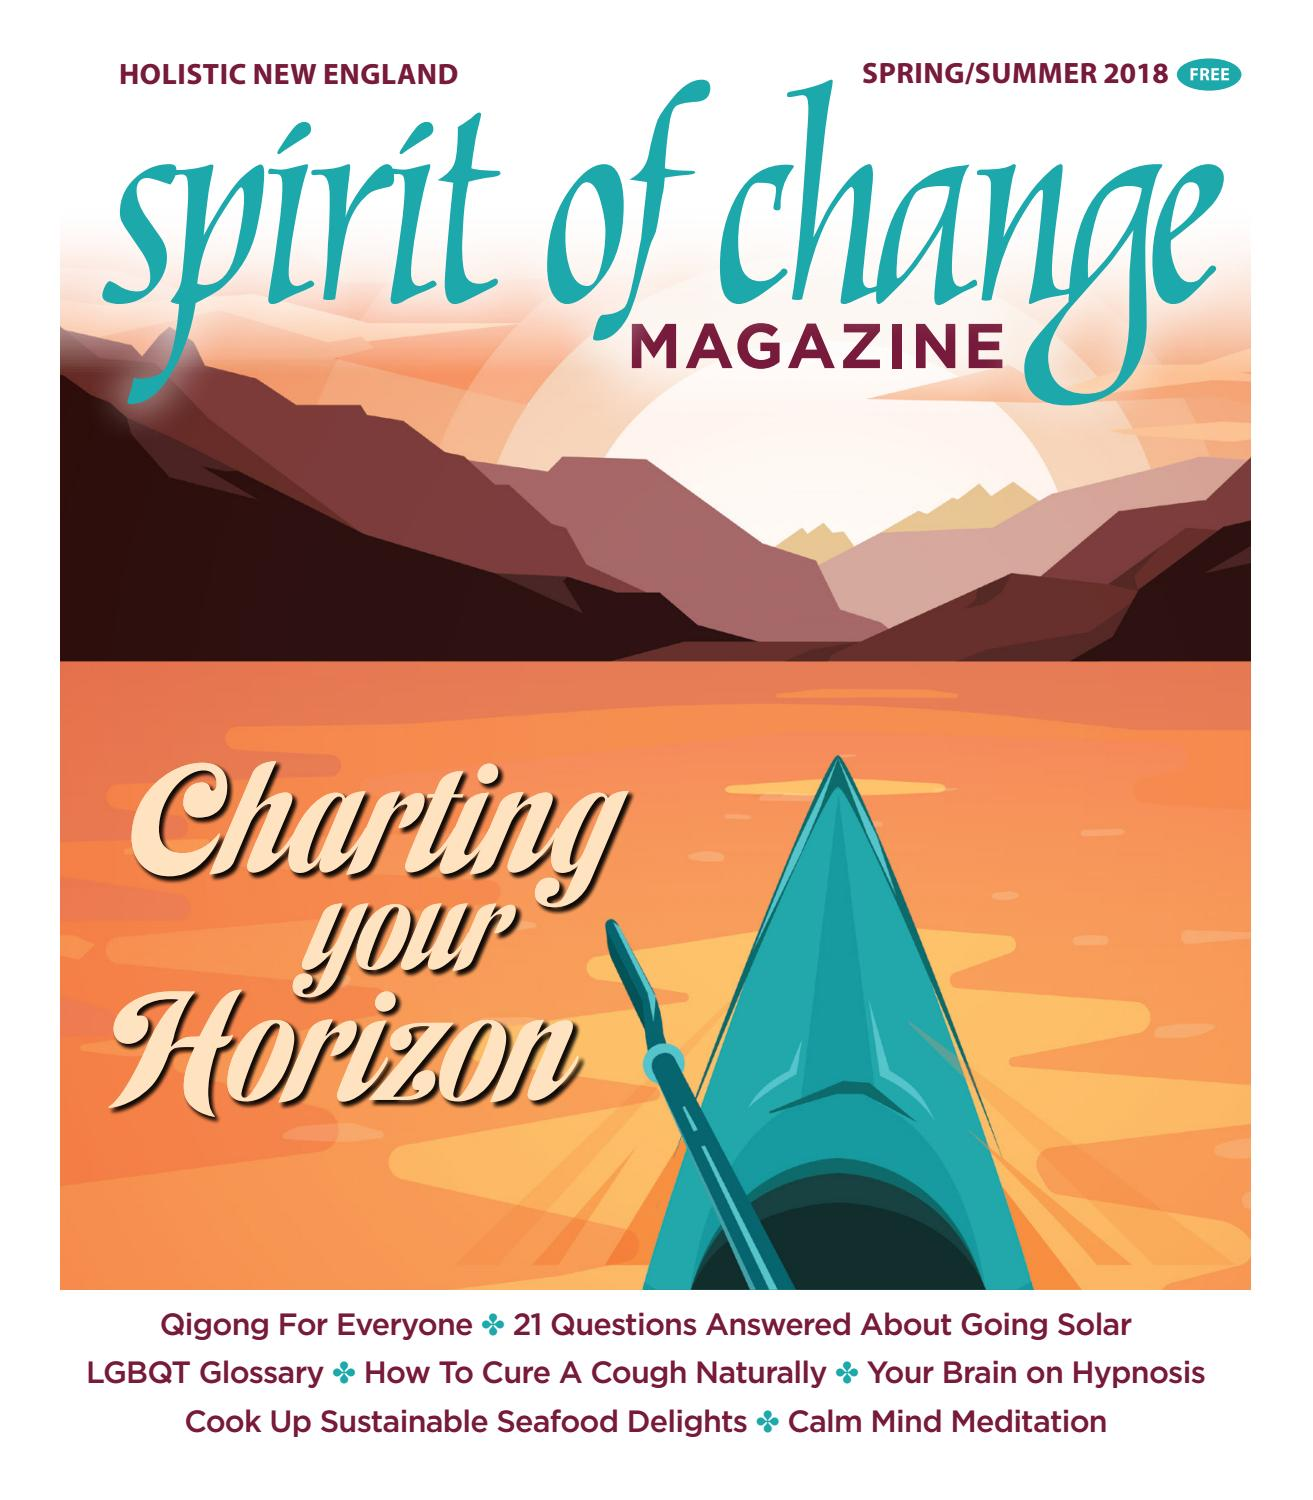 Spirit of change magazine springsummer 2018 by spirit of change spirit of change magazine springsummer 2018 by spirit of change magazine issuu fandeluxe Image collections